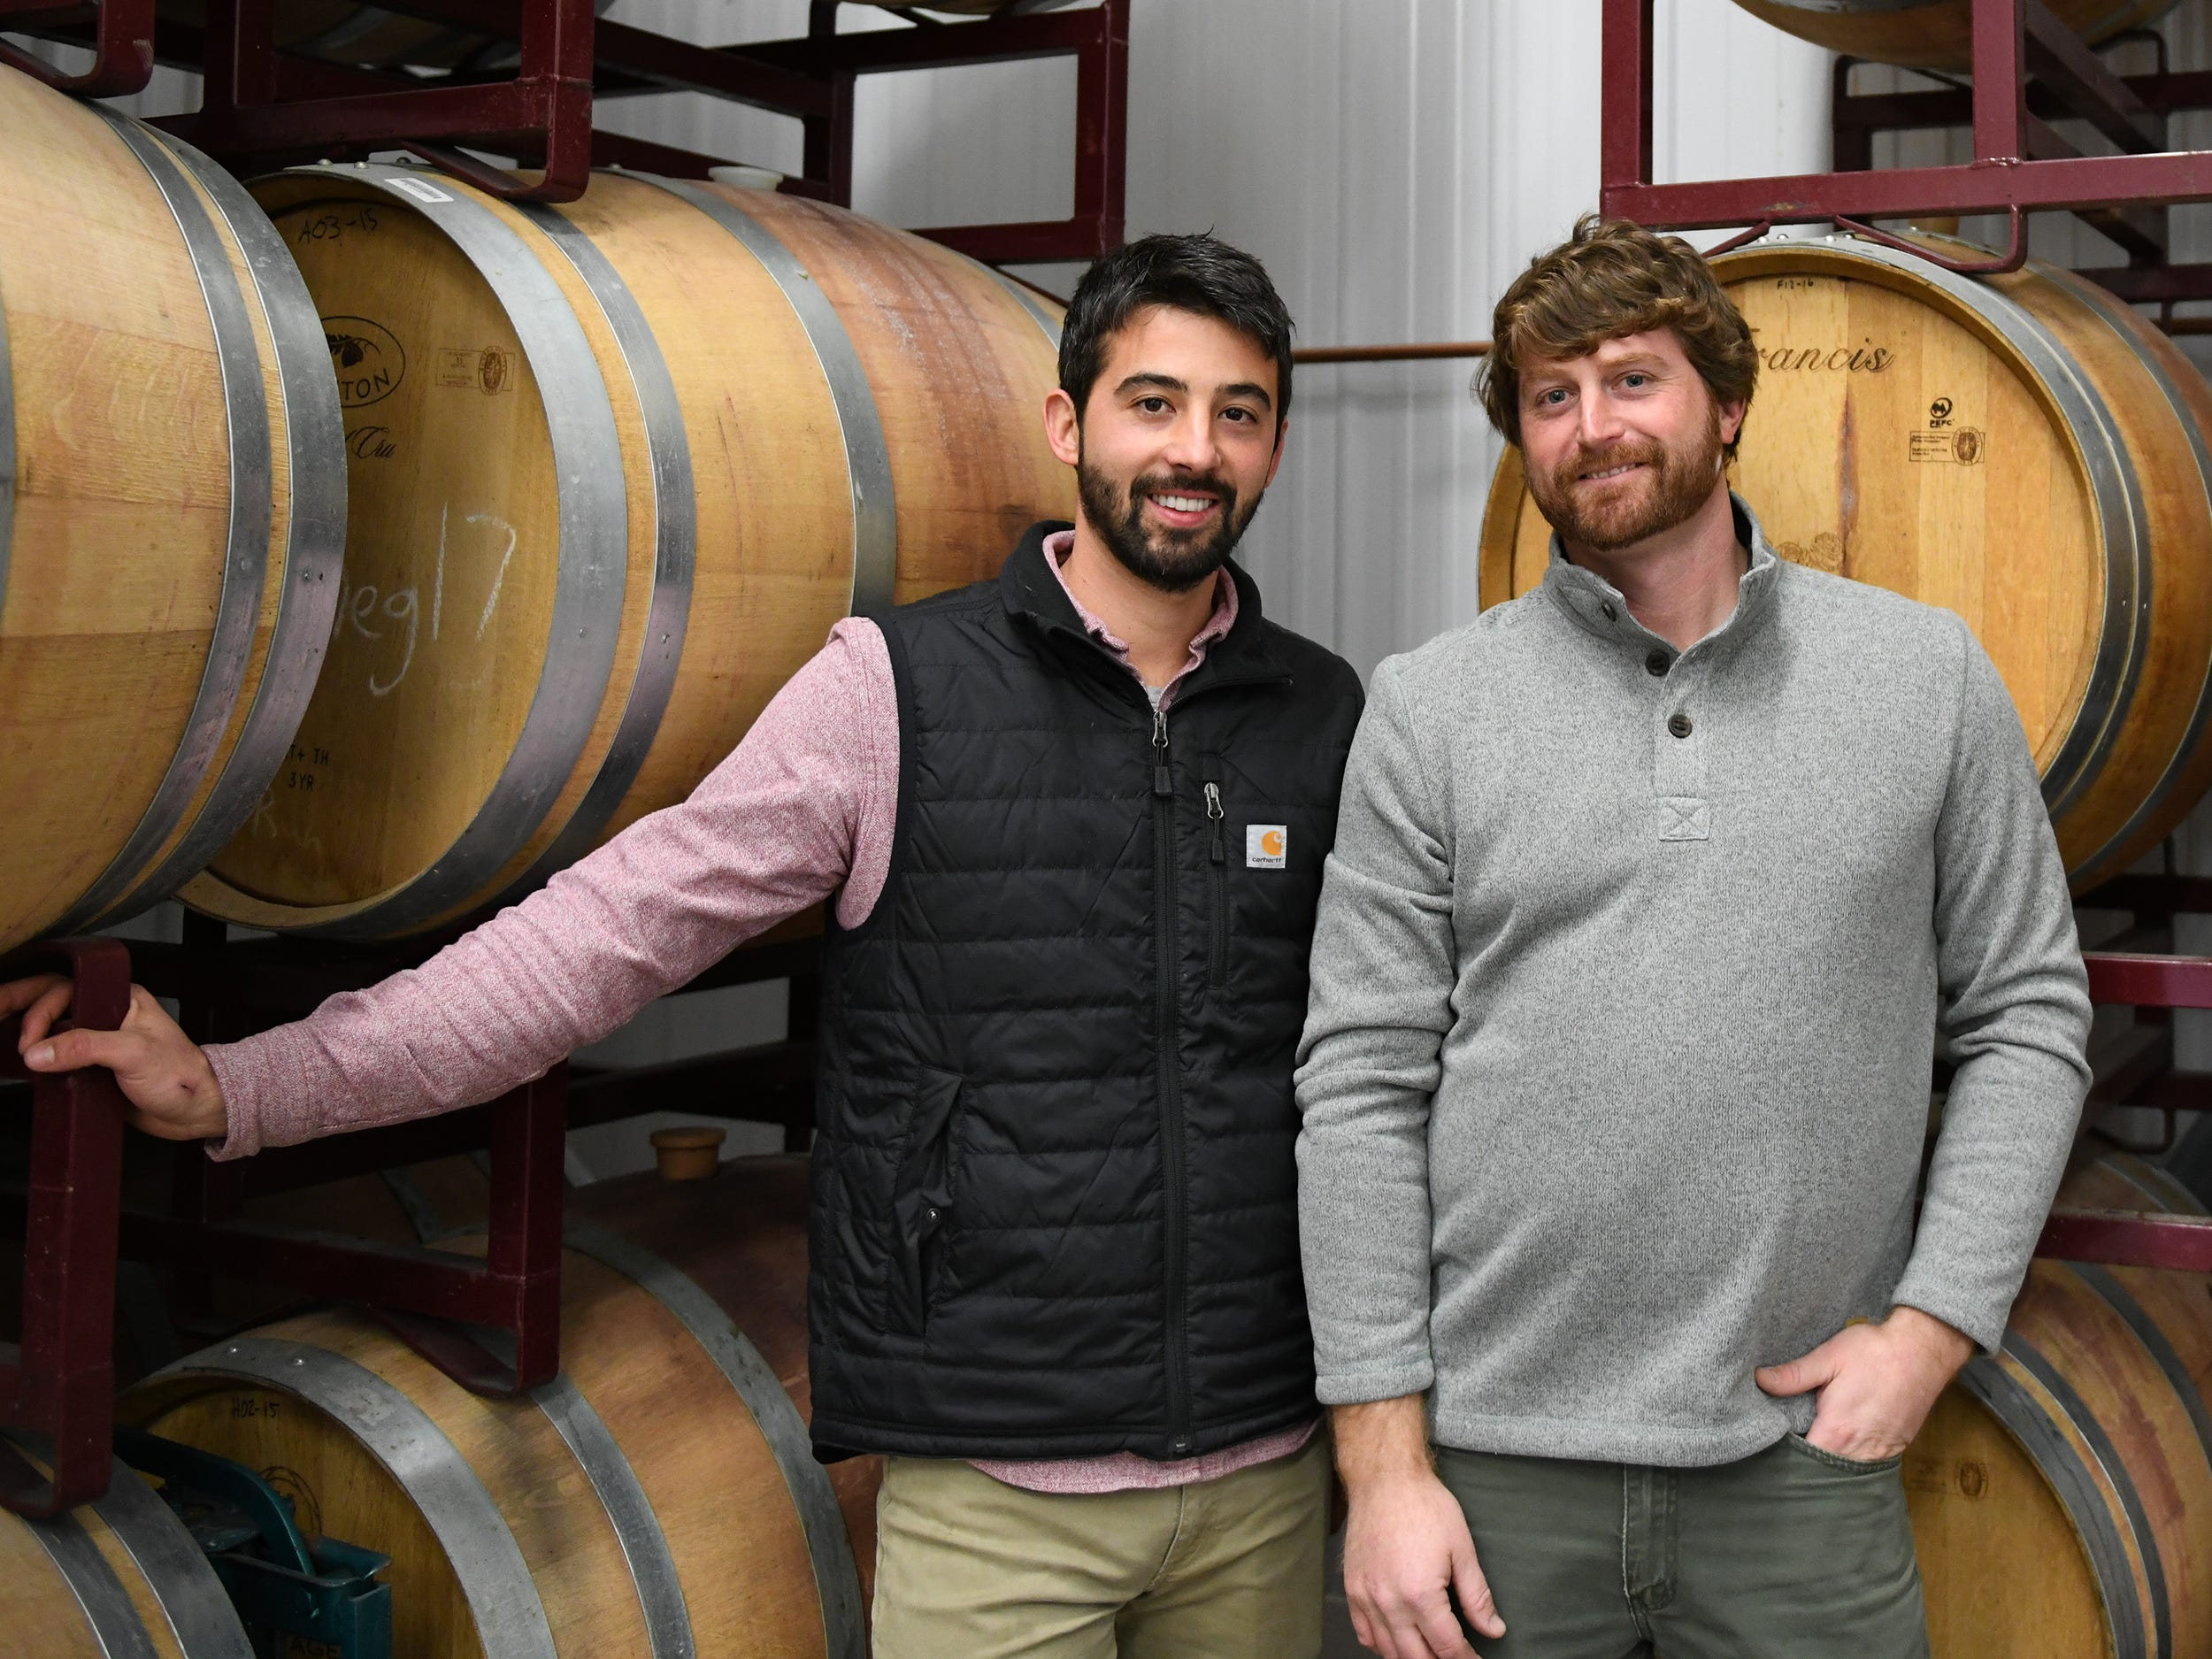 Cedar Rose Vineyards managing partners Steven Becker (left) and Dustin Tarpine stand next to barrels of wine produced at their Rosenhayn facility on Tuesday, January 8, 2019.